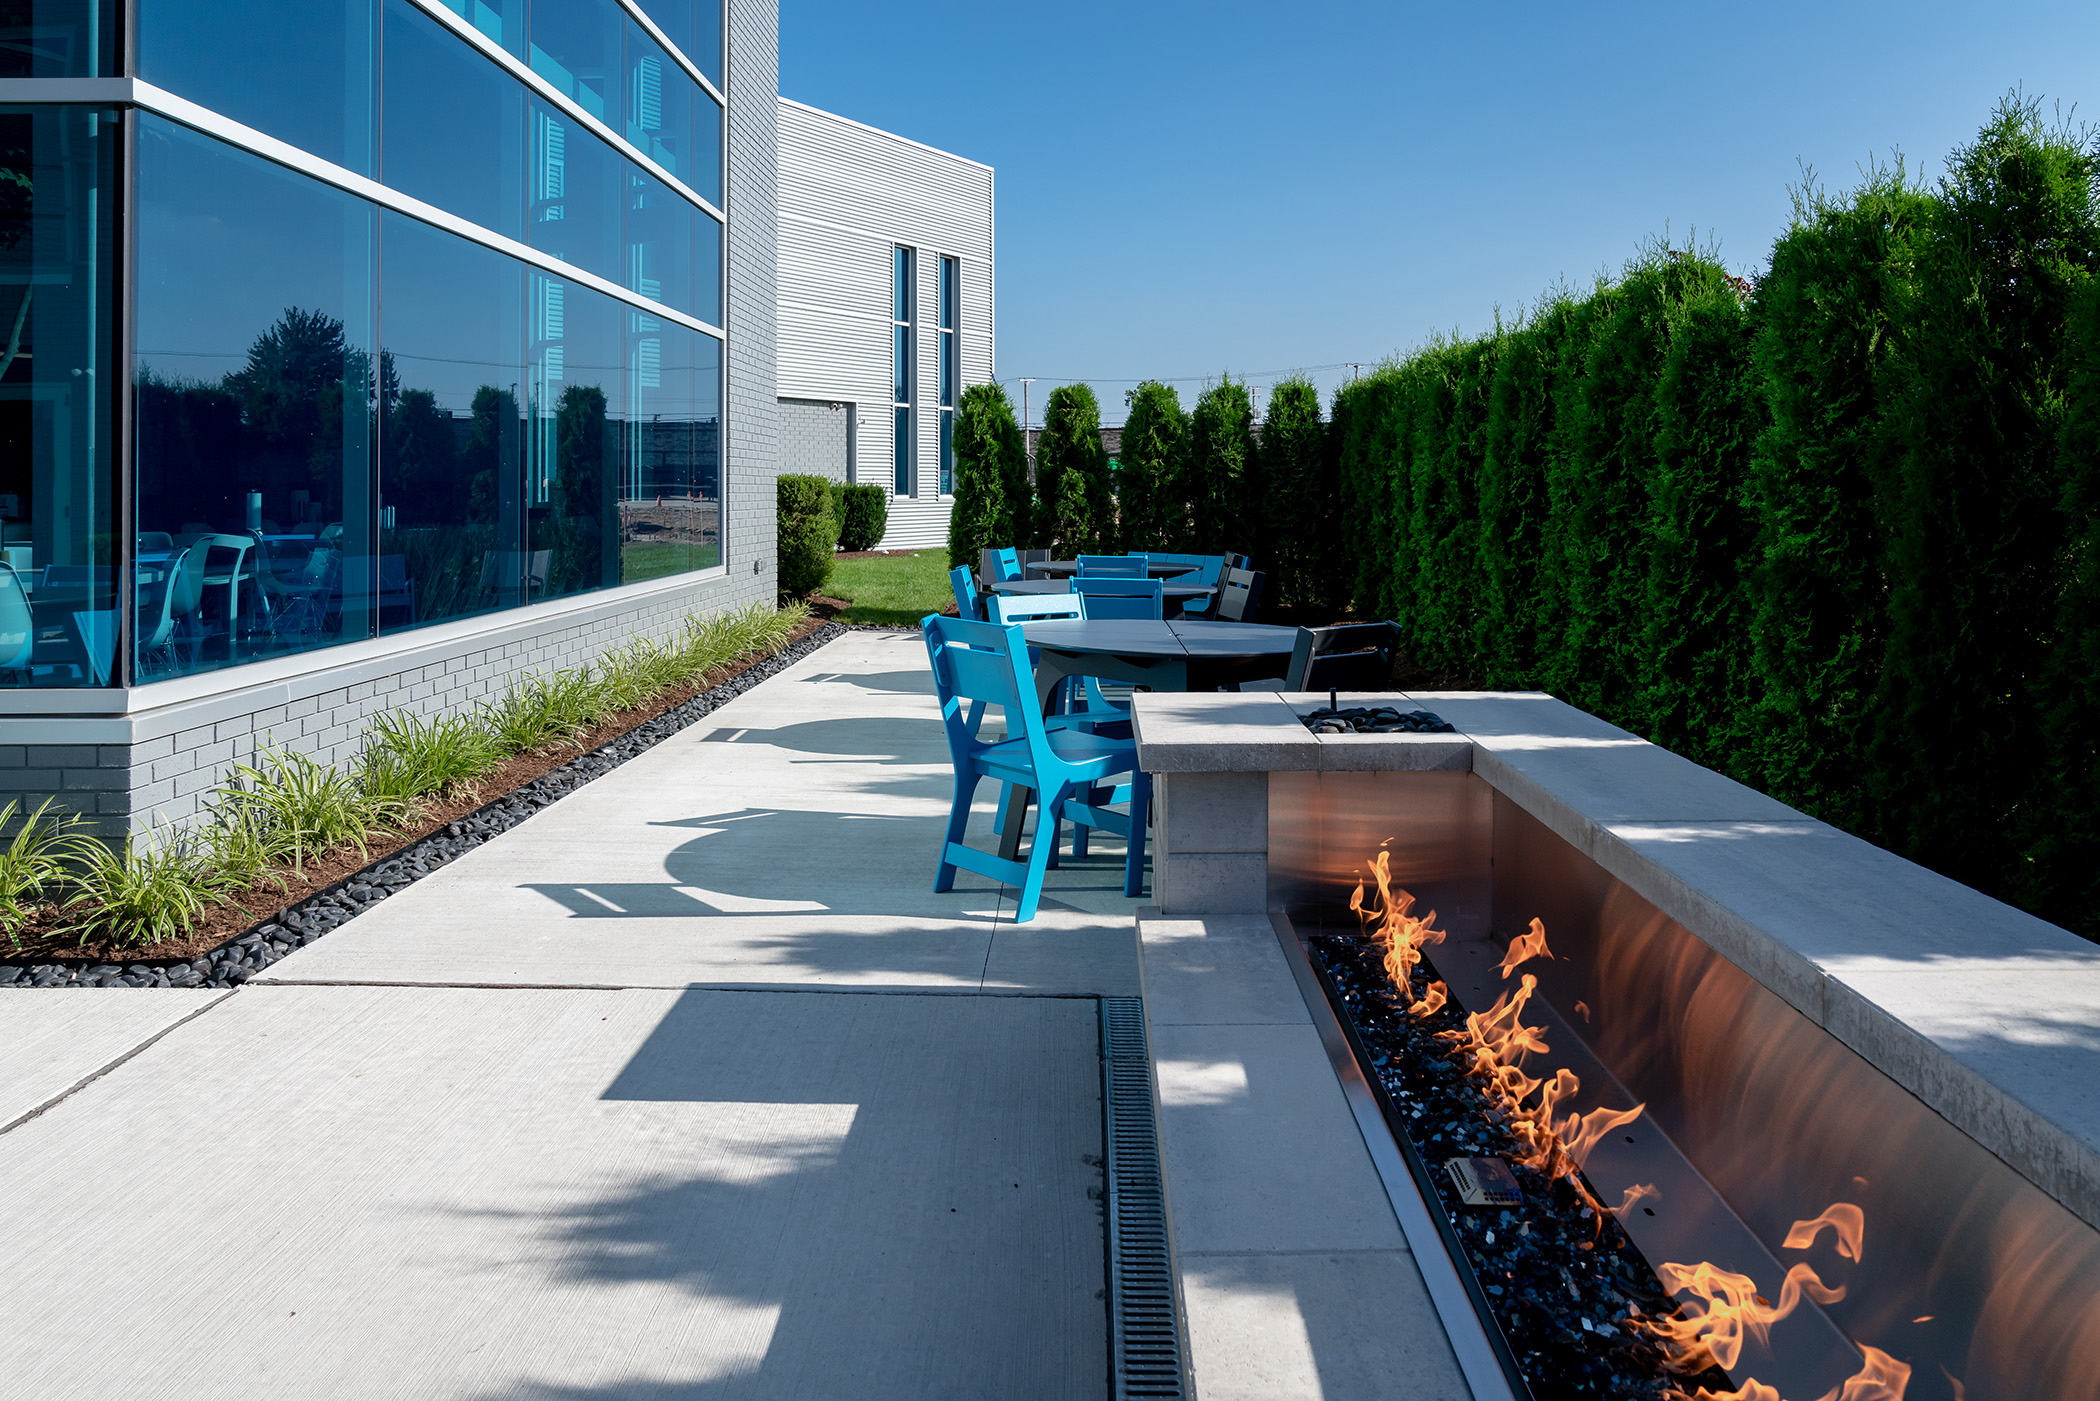 Outdoor Lunch Space for Employees